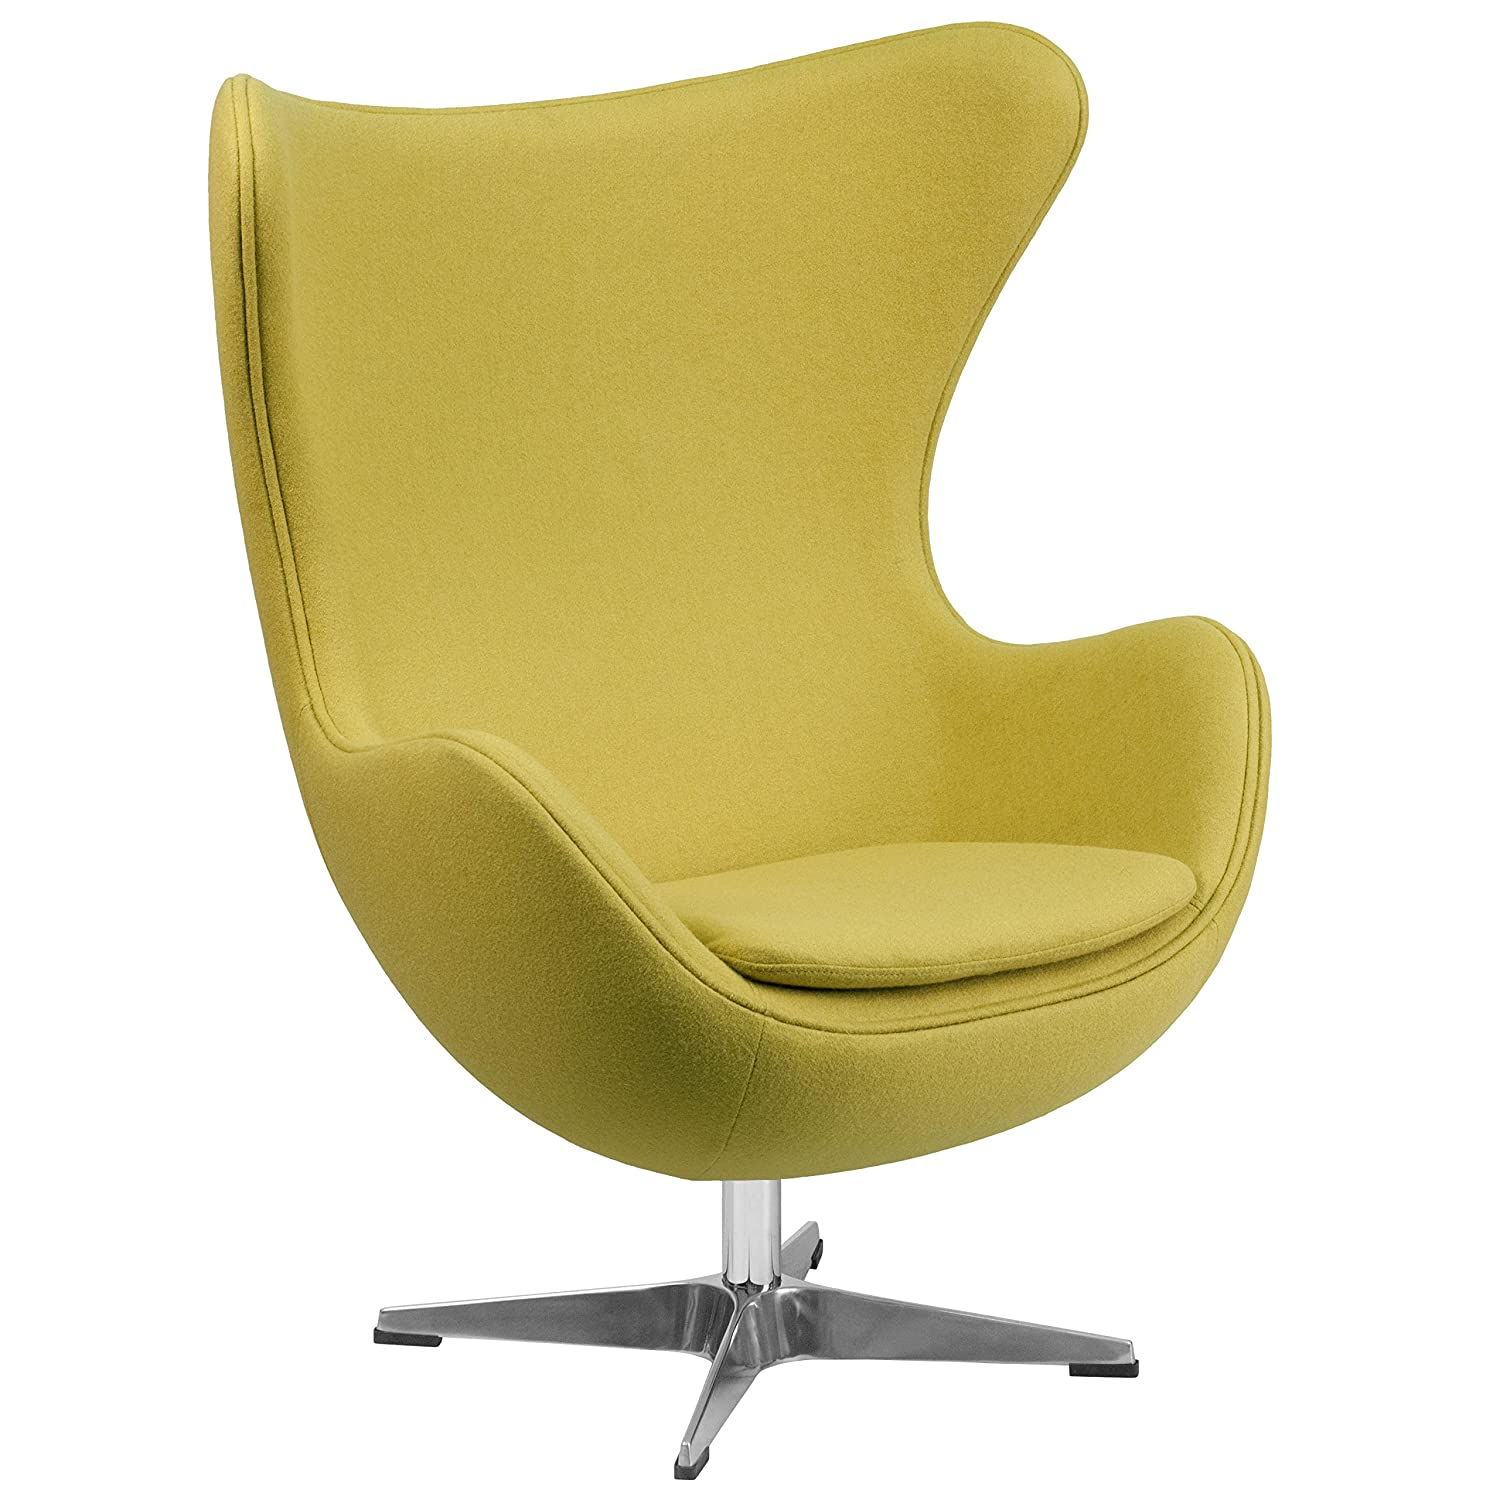 "Amazon Yellow Egg Chair ""Vela"" Retro Lounge Chairs fice"